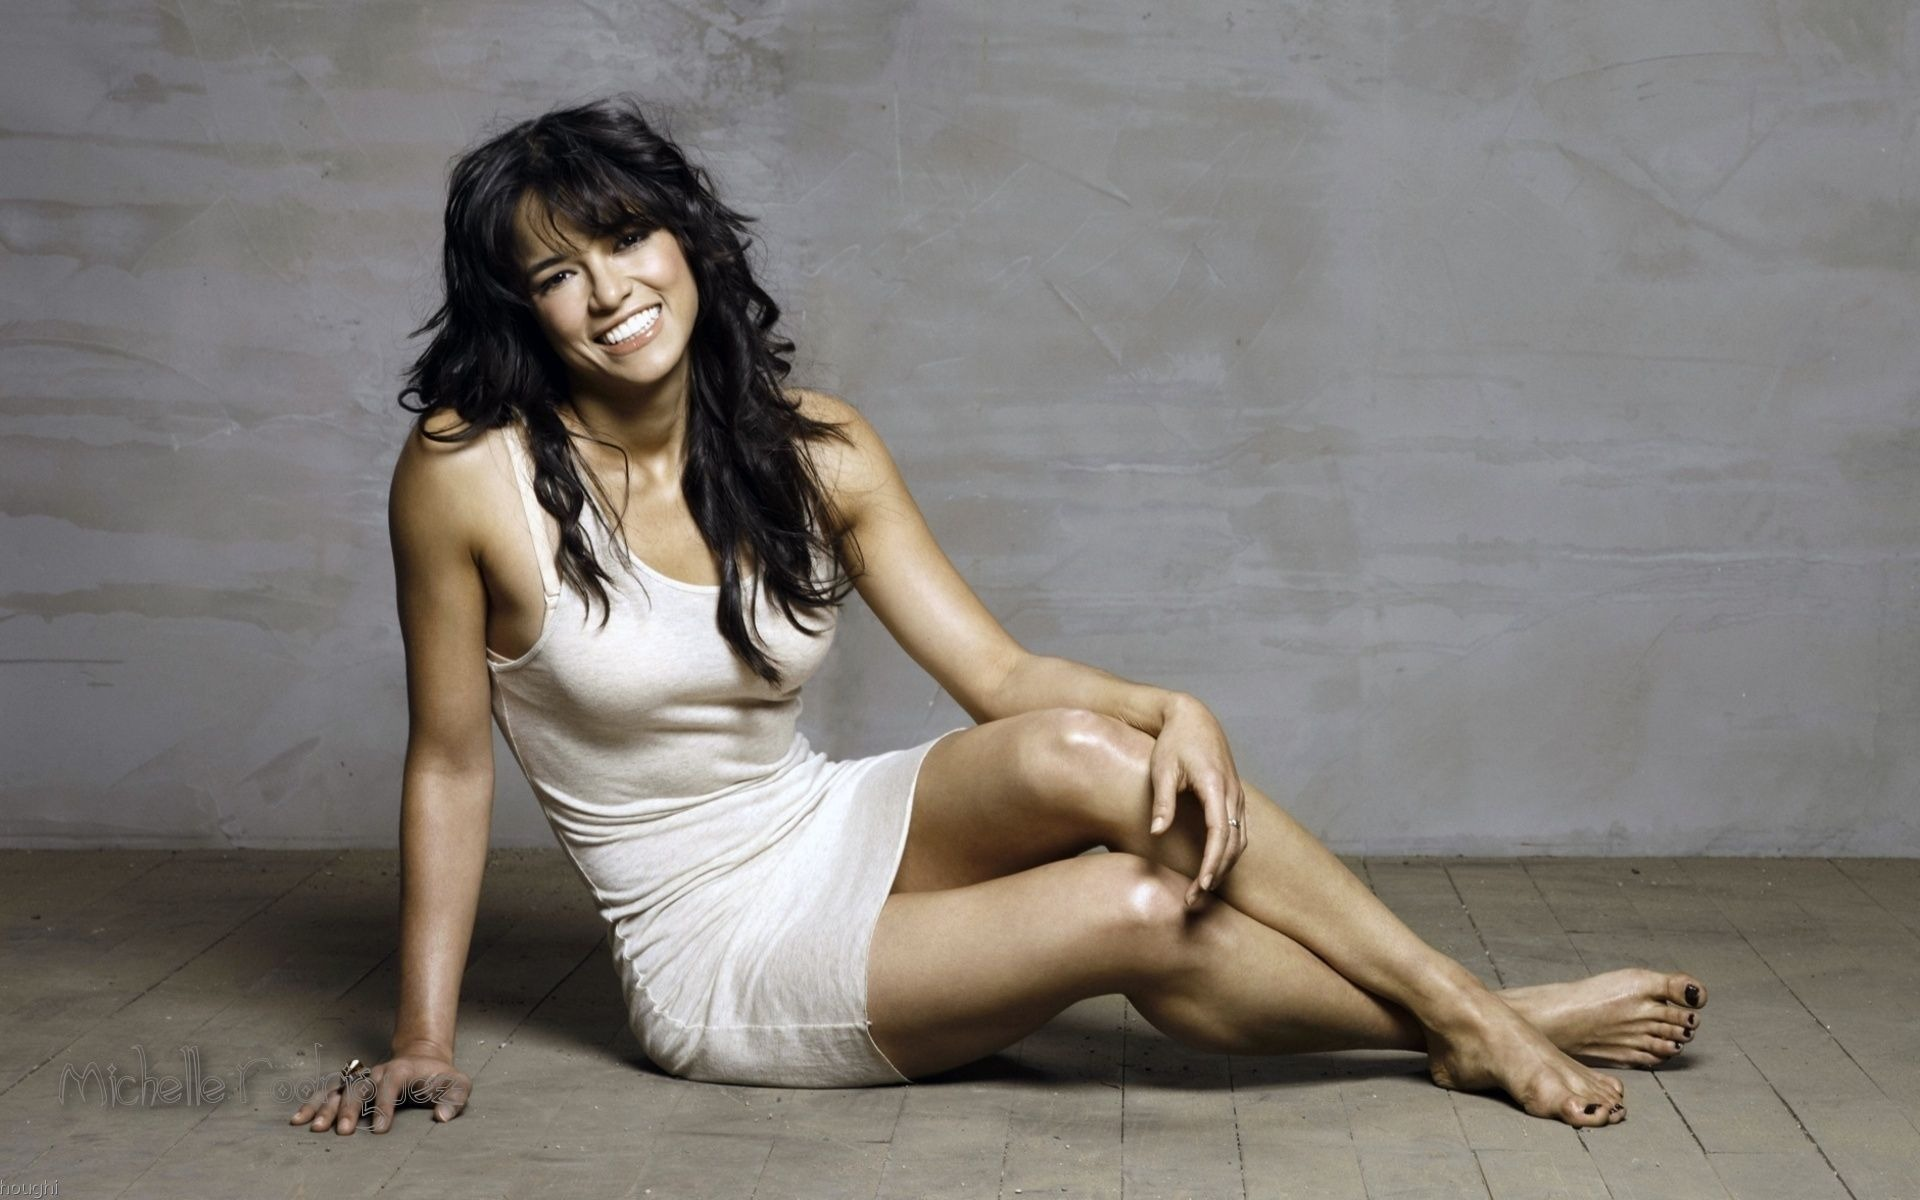 Michelle Rodriguez #002 - 1920x1200 Wallpapers Pictures Photos Images